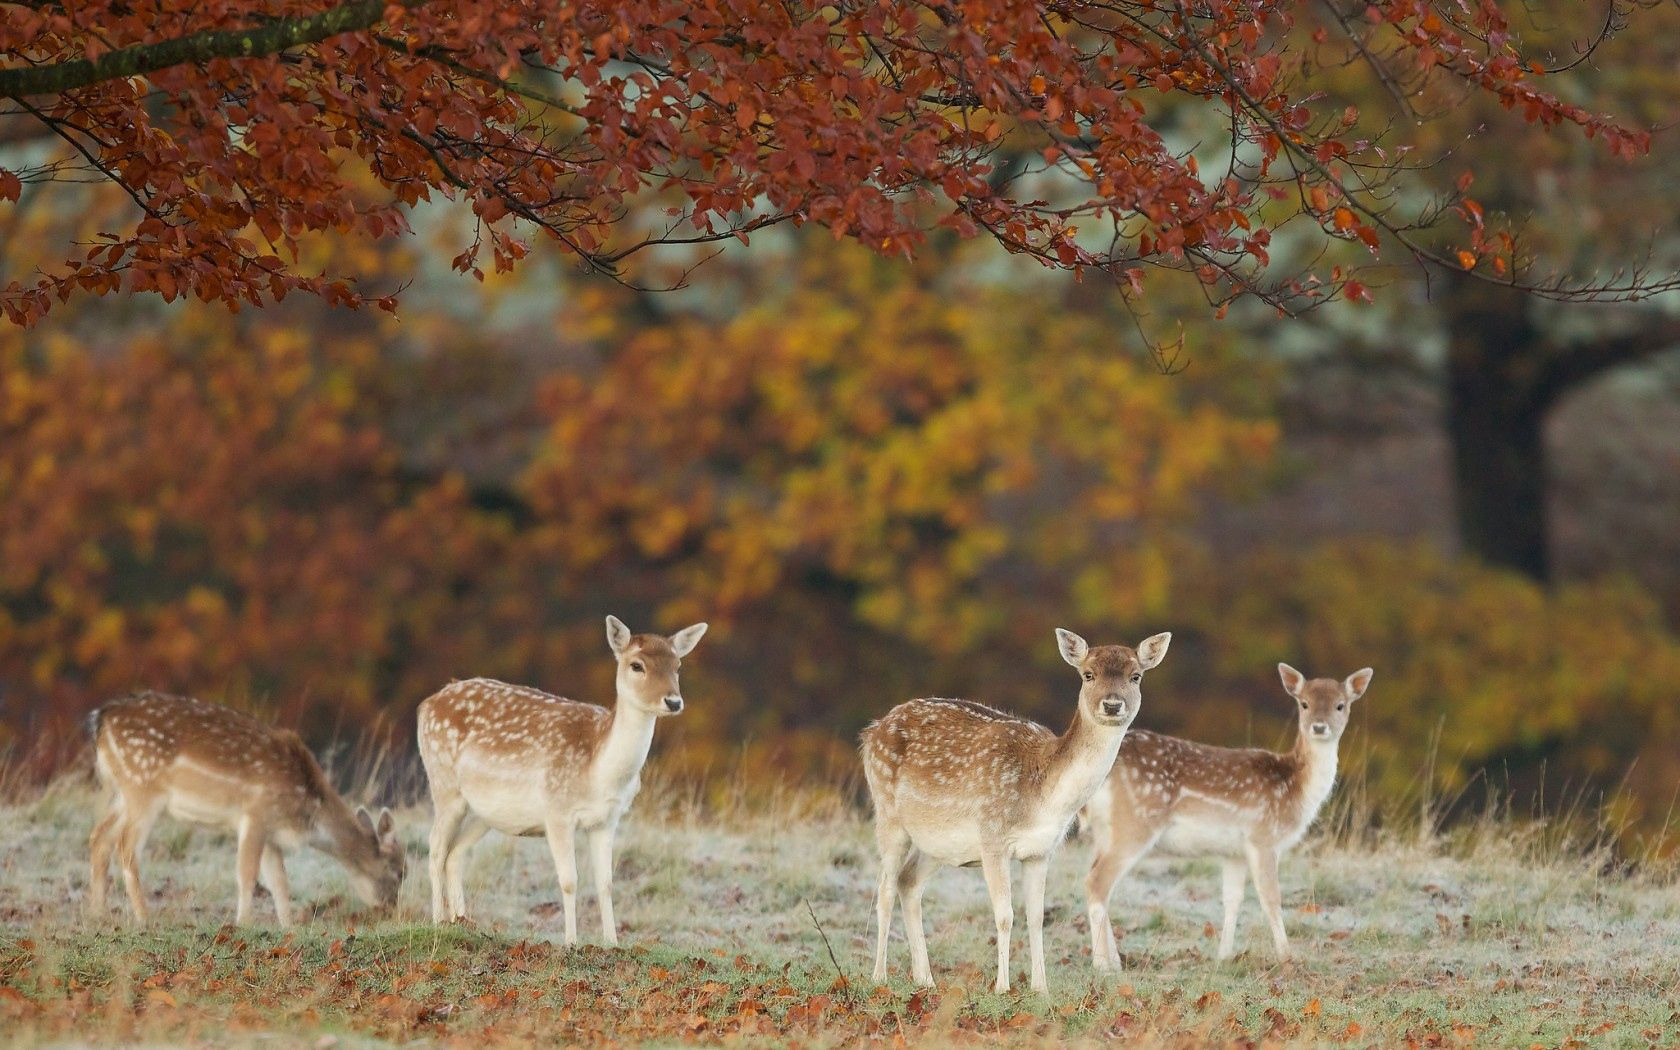 141243 download wallpaper Animals, Deers, Nature, Autumn, Leaves screensavers and pictures for free